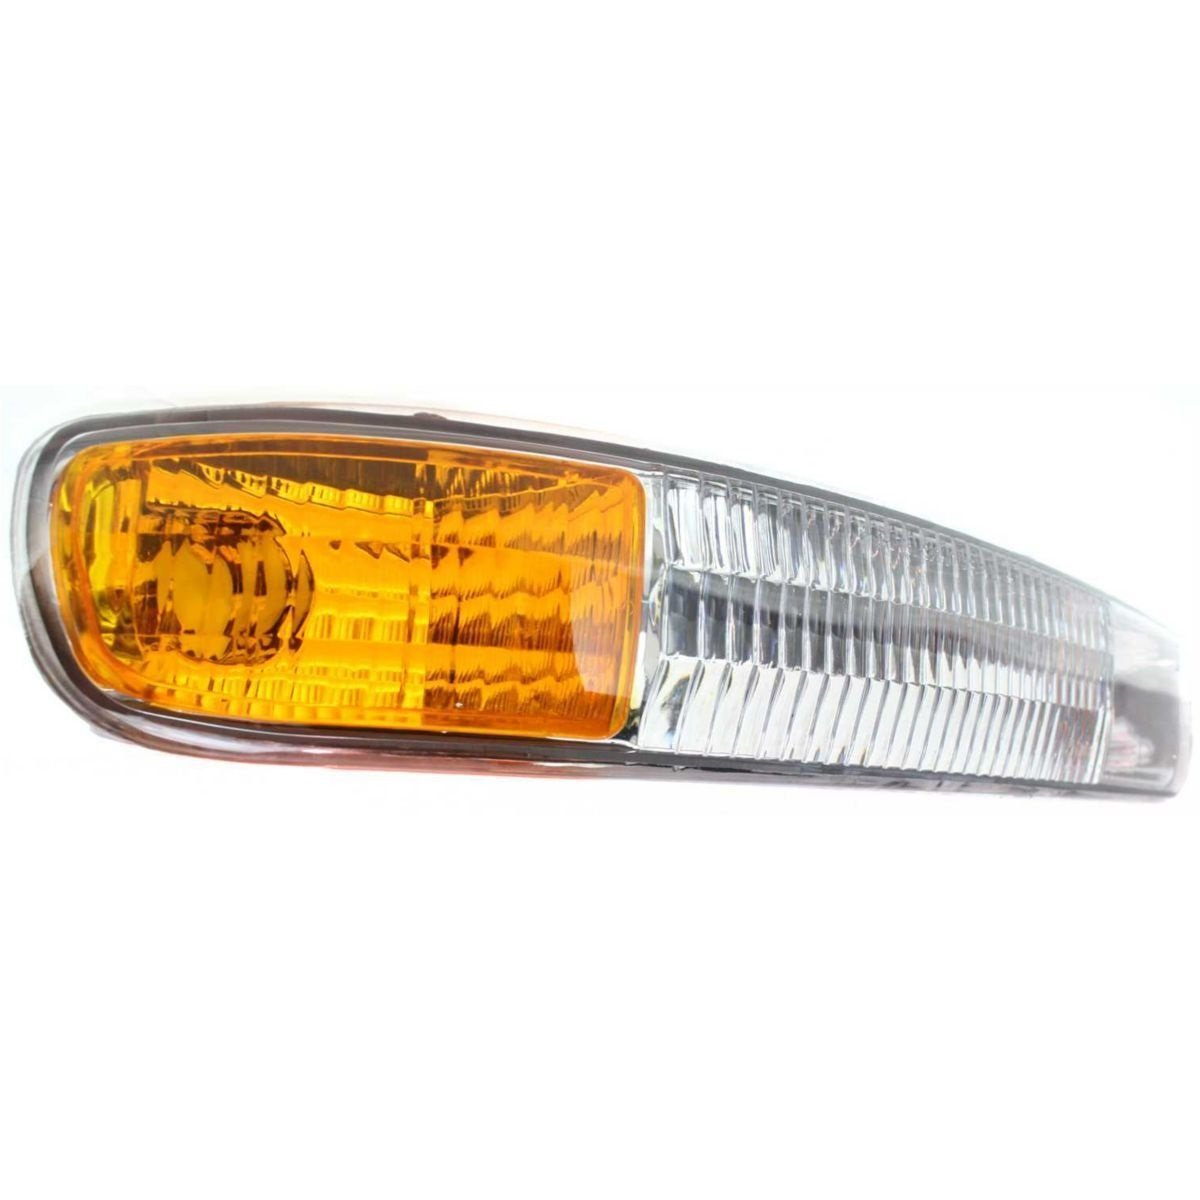 RV Motorhome Pair 28, 30, 32ft Models Replacement Front Corner Turn Signal Lights Tiffin Allegro 2005 Left /& Right